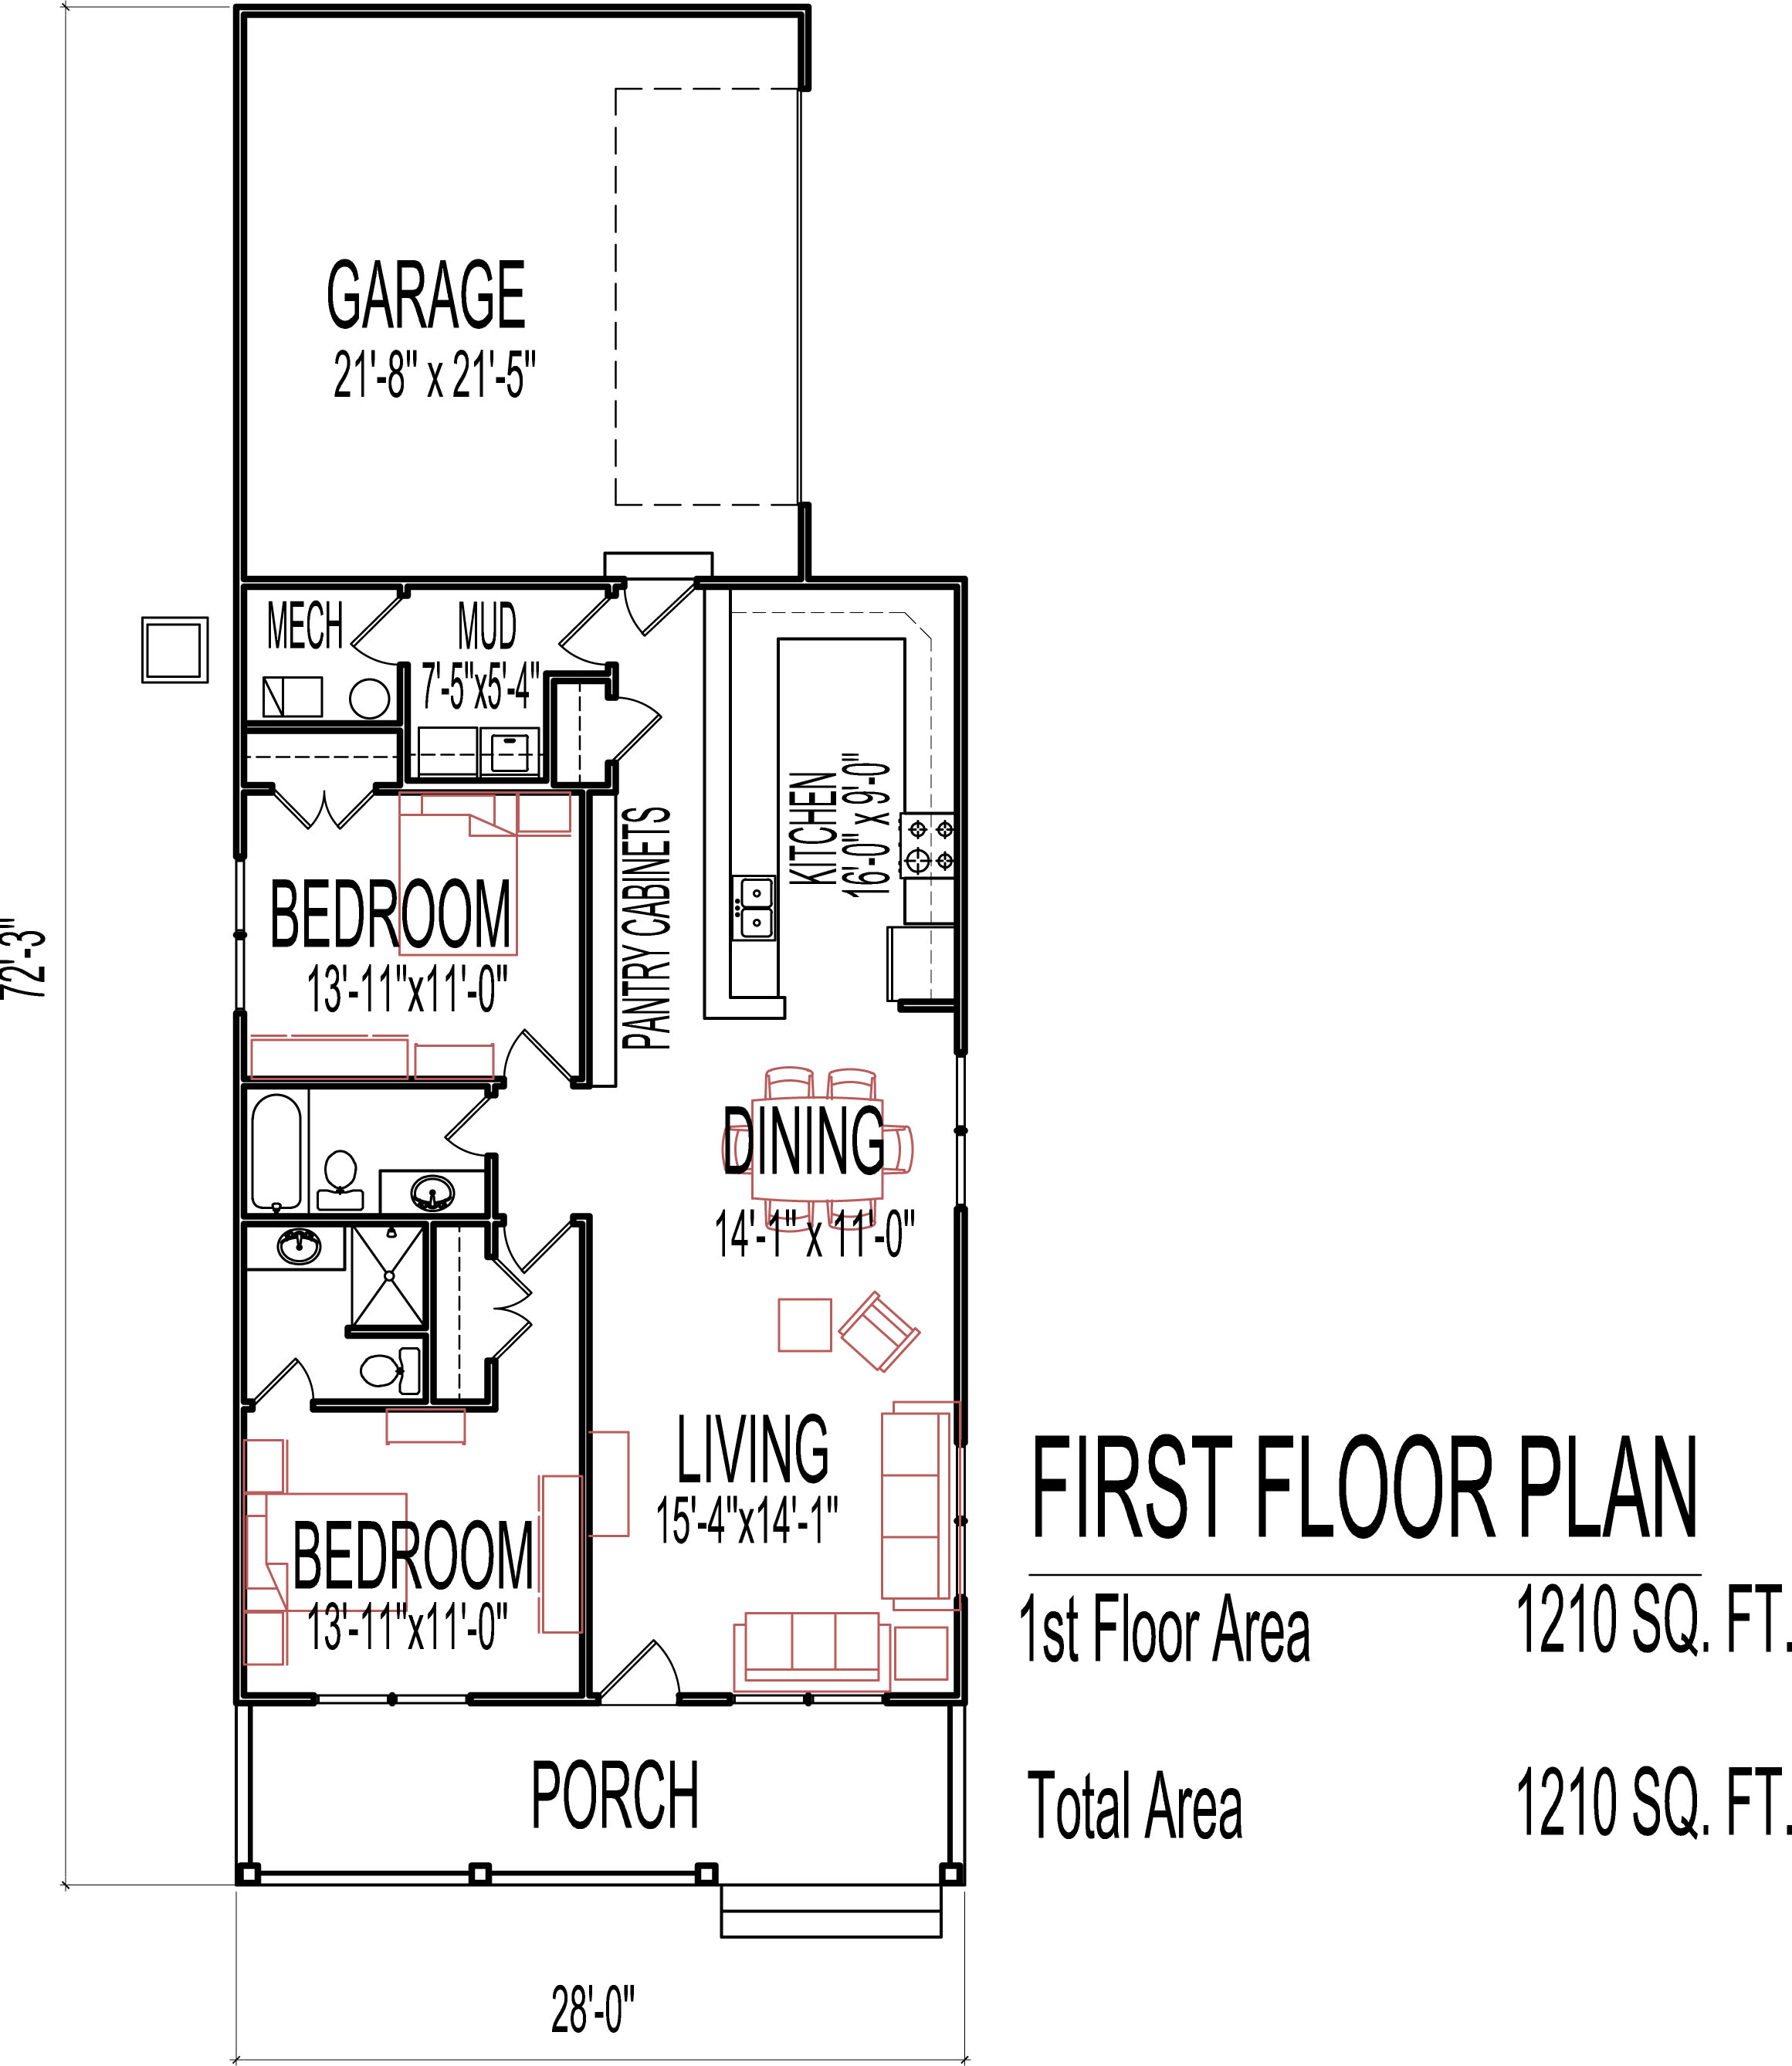 Small Two Bedroom House Plans Low Cost 1200 Sq Ft One